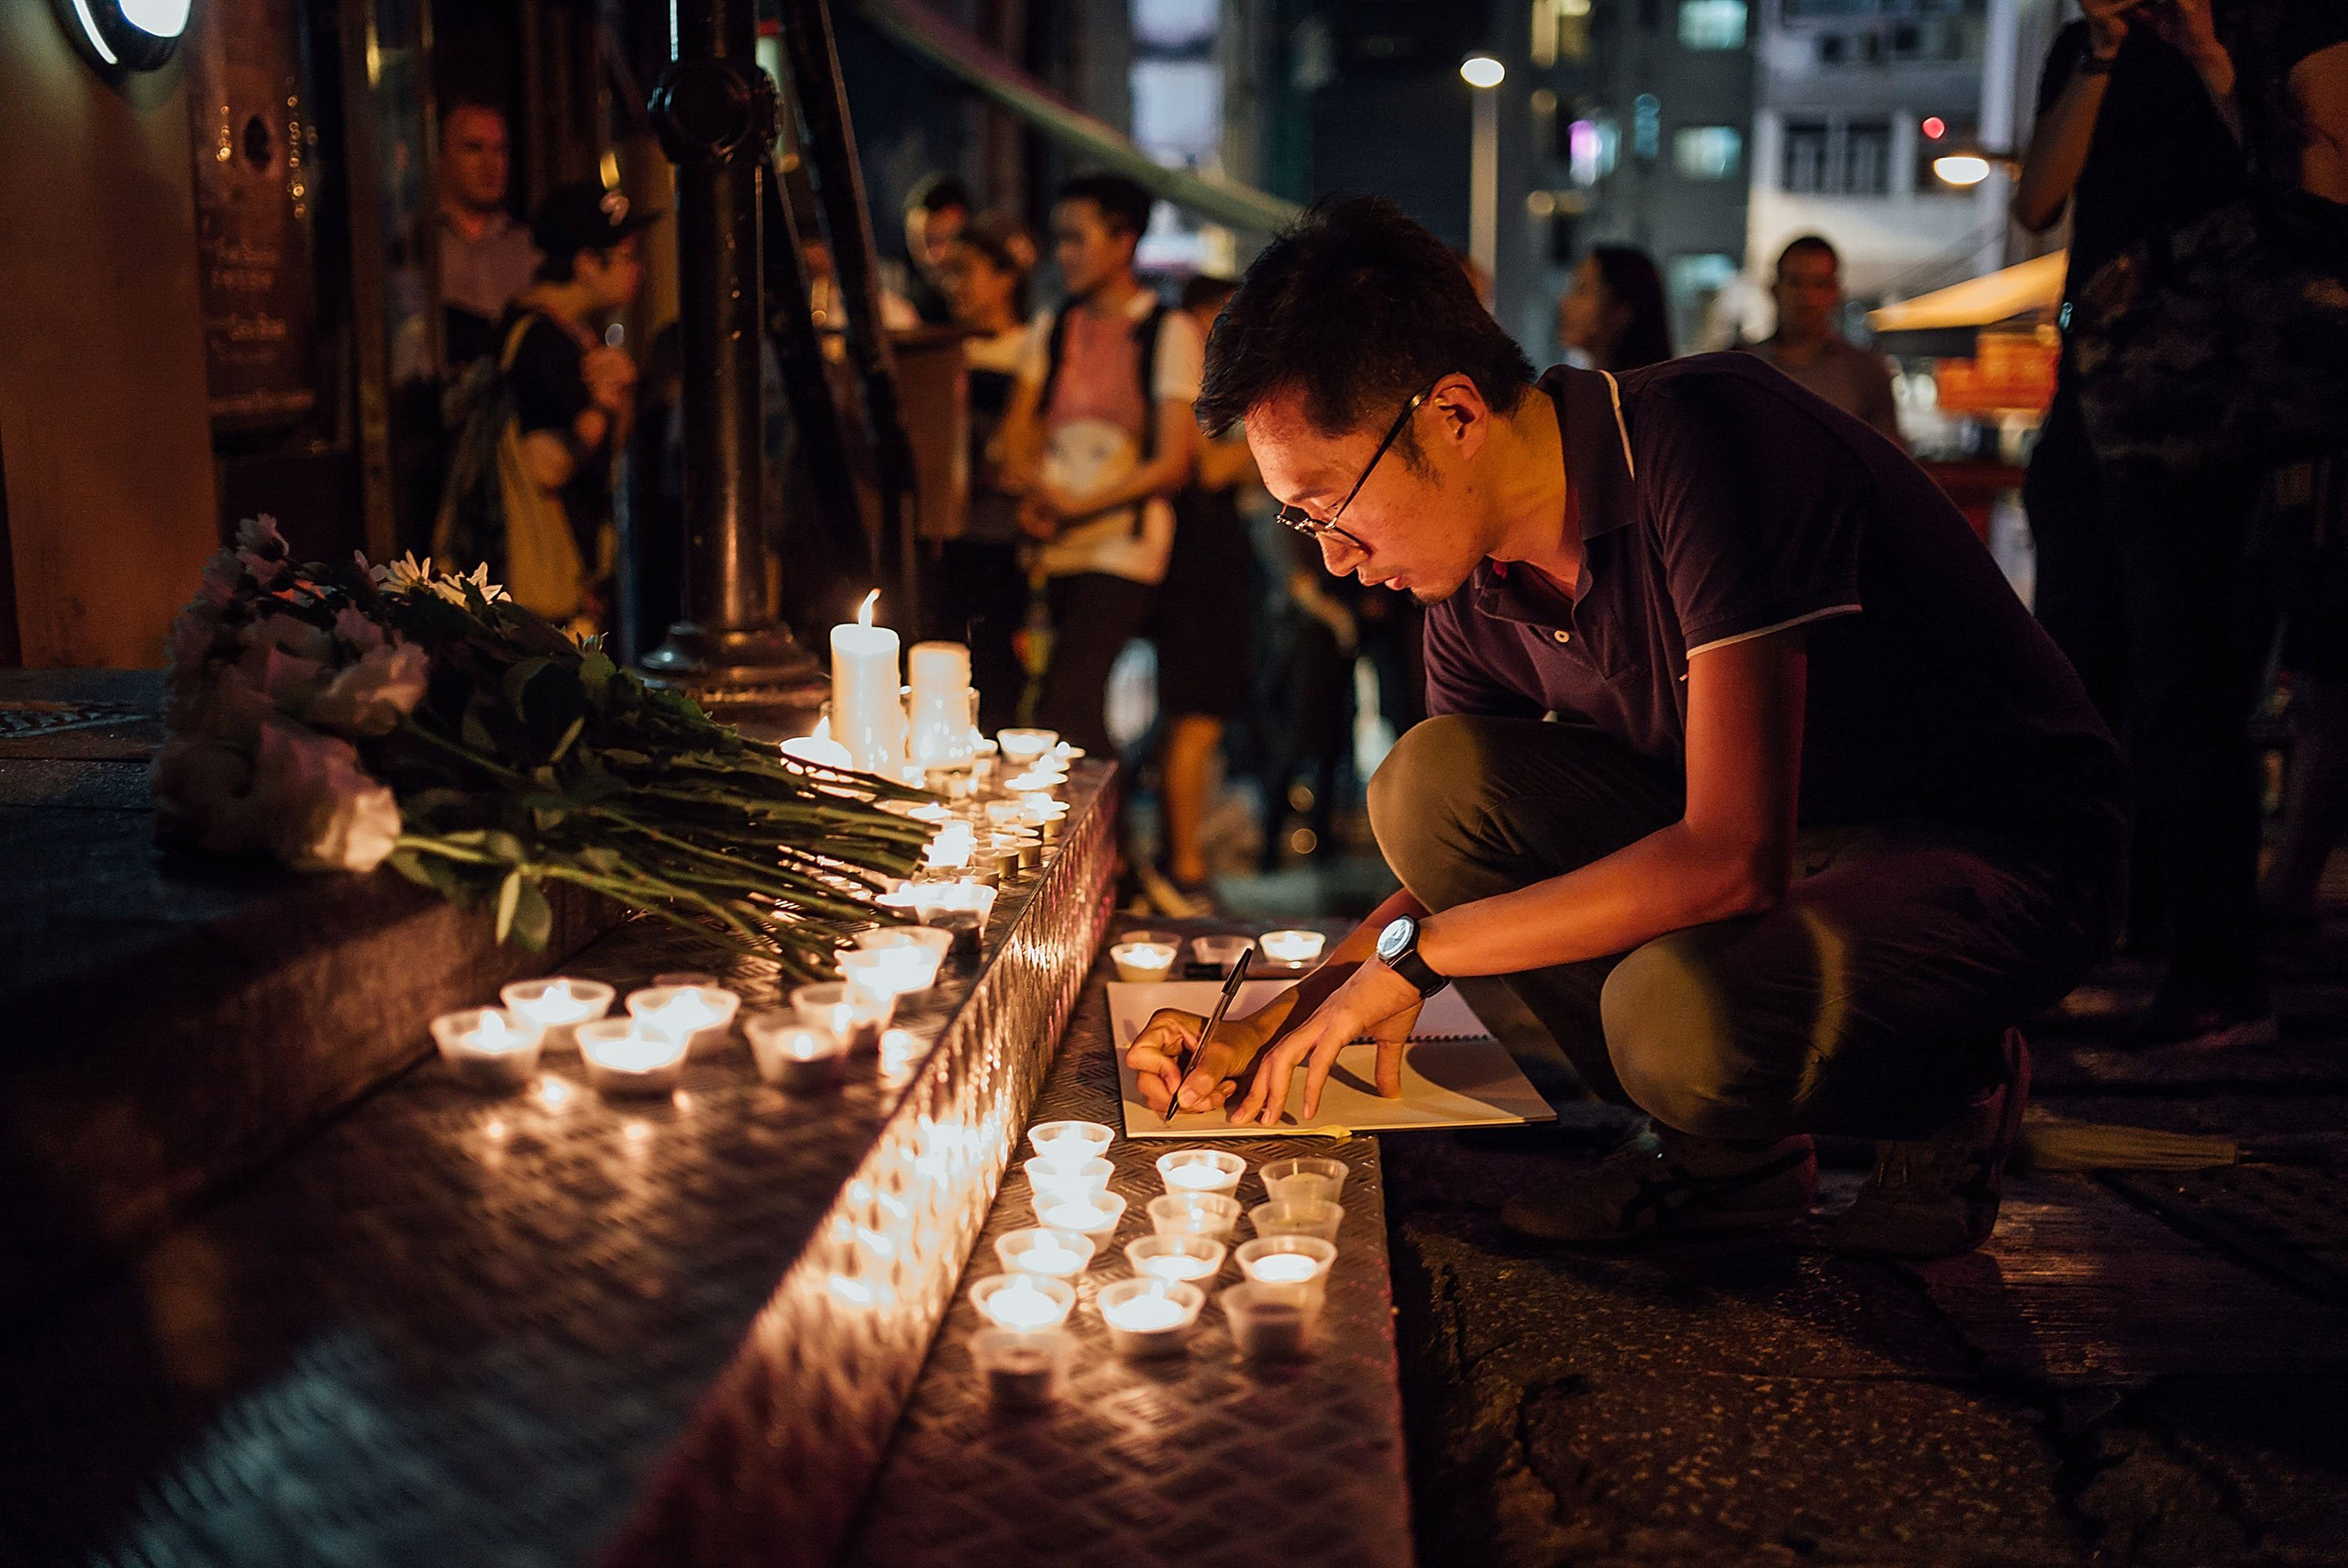 People take part in a candlelight vigil for the victims of a shooting in a gay nightclub in Orlando, in Hong Kong on June 13, 2016.